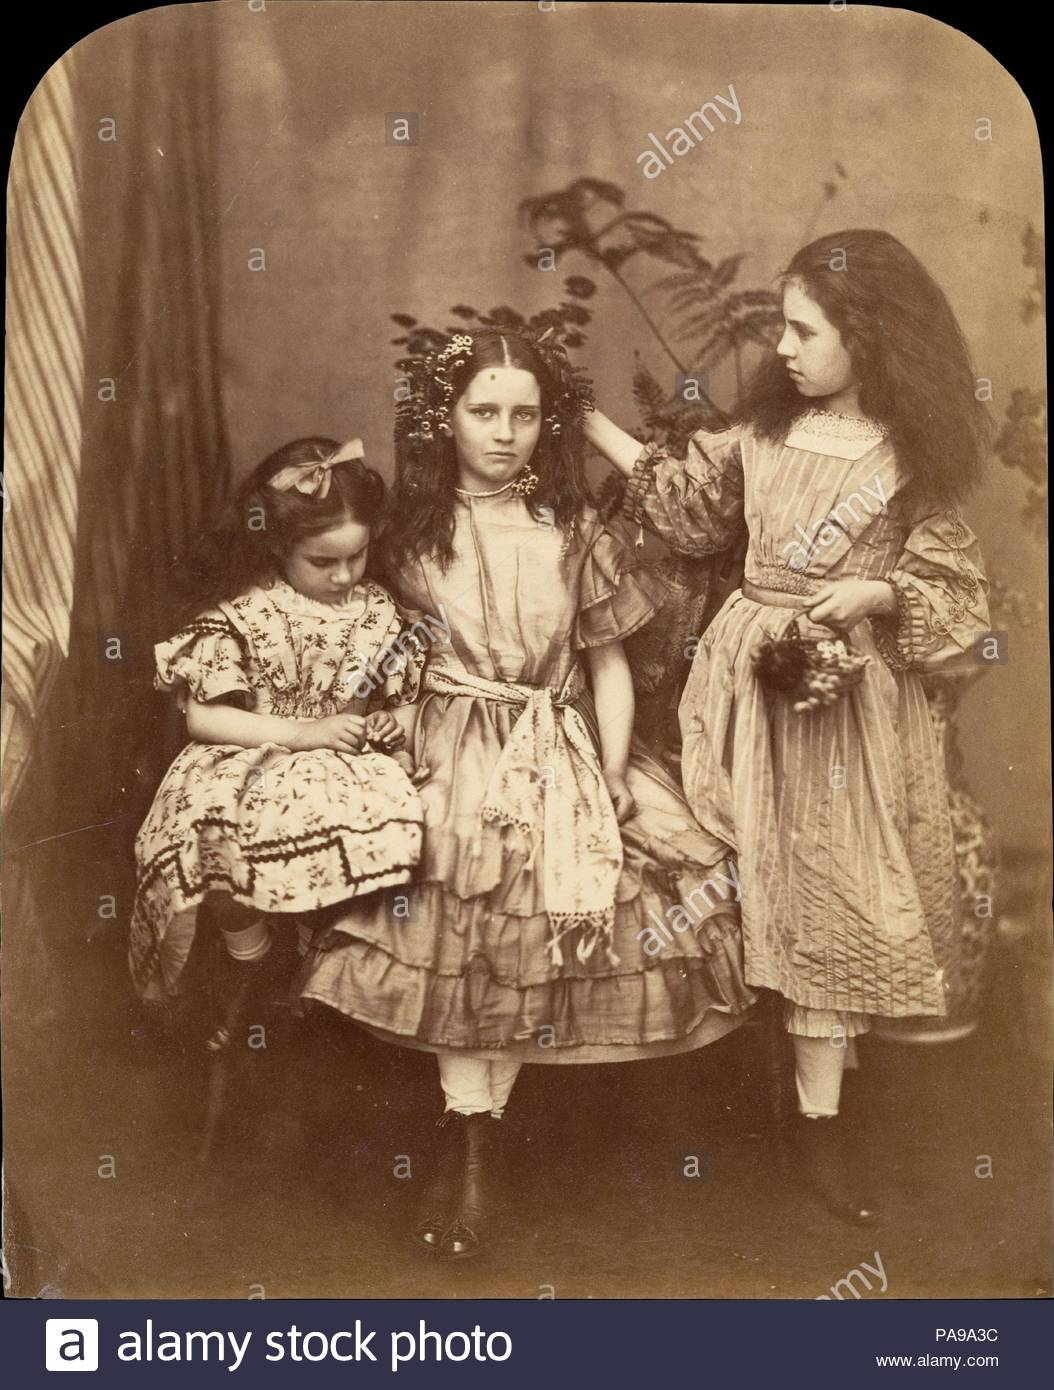 Flora Rankin, Irene MacDonald, and Mary Josephine MacDonald at Elm Lodge. Artist: Lewis Carroll (British, Daresbury, Cheshire 1832-1898 Guildford). Dimensions: 22.2 x 18 cm (8 3/4 x 7 1/16 in.). Subject: Flora Rankin (British); Irene MacDonald (British, born 1857); Mary Josephine MacDonald (British, 1853-1878). Date: July 1863.  Irene and Mary MacDonald were two of the five children of Scottish novelist and poet George MacDonald. Carroll was a friend of the family, and the children affectionately called him 'Uncle.' It was the MacDonalds to whom he read the manuscript of The Adventures of Alic - Stock Image